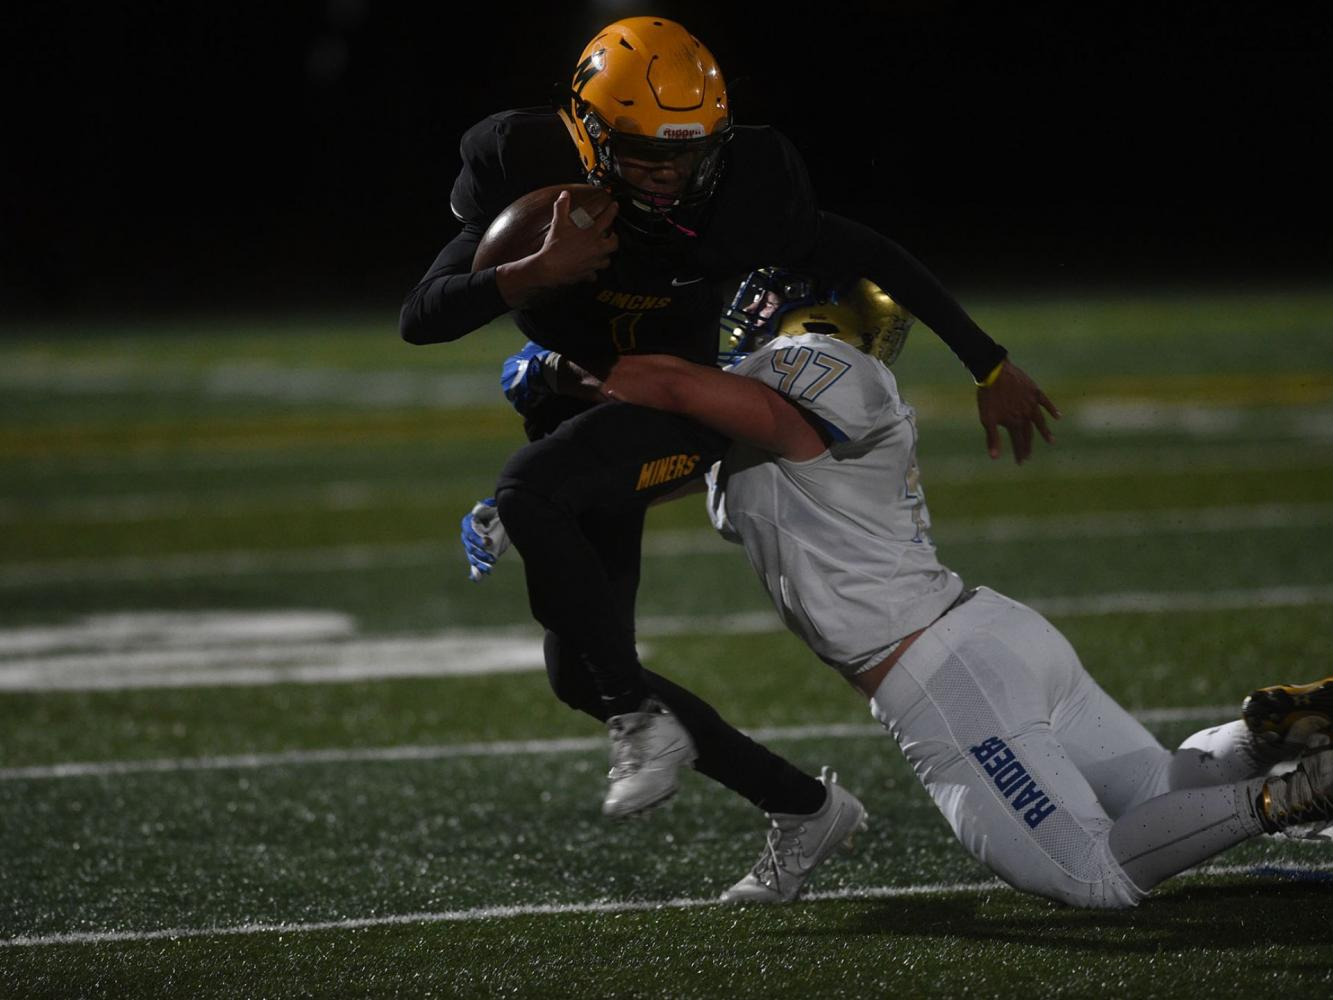 Josh Rolling makes a run for it, fighting back against the Reed Raiders on September 22. (Photo courtesy of the Reno Gazette-Journal)